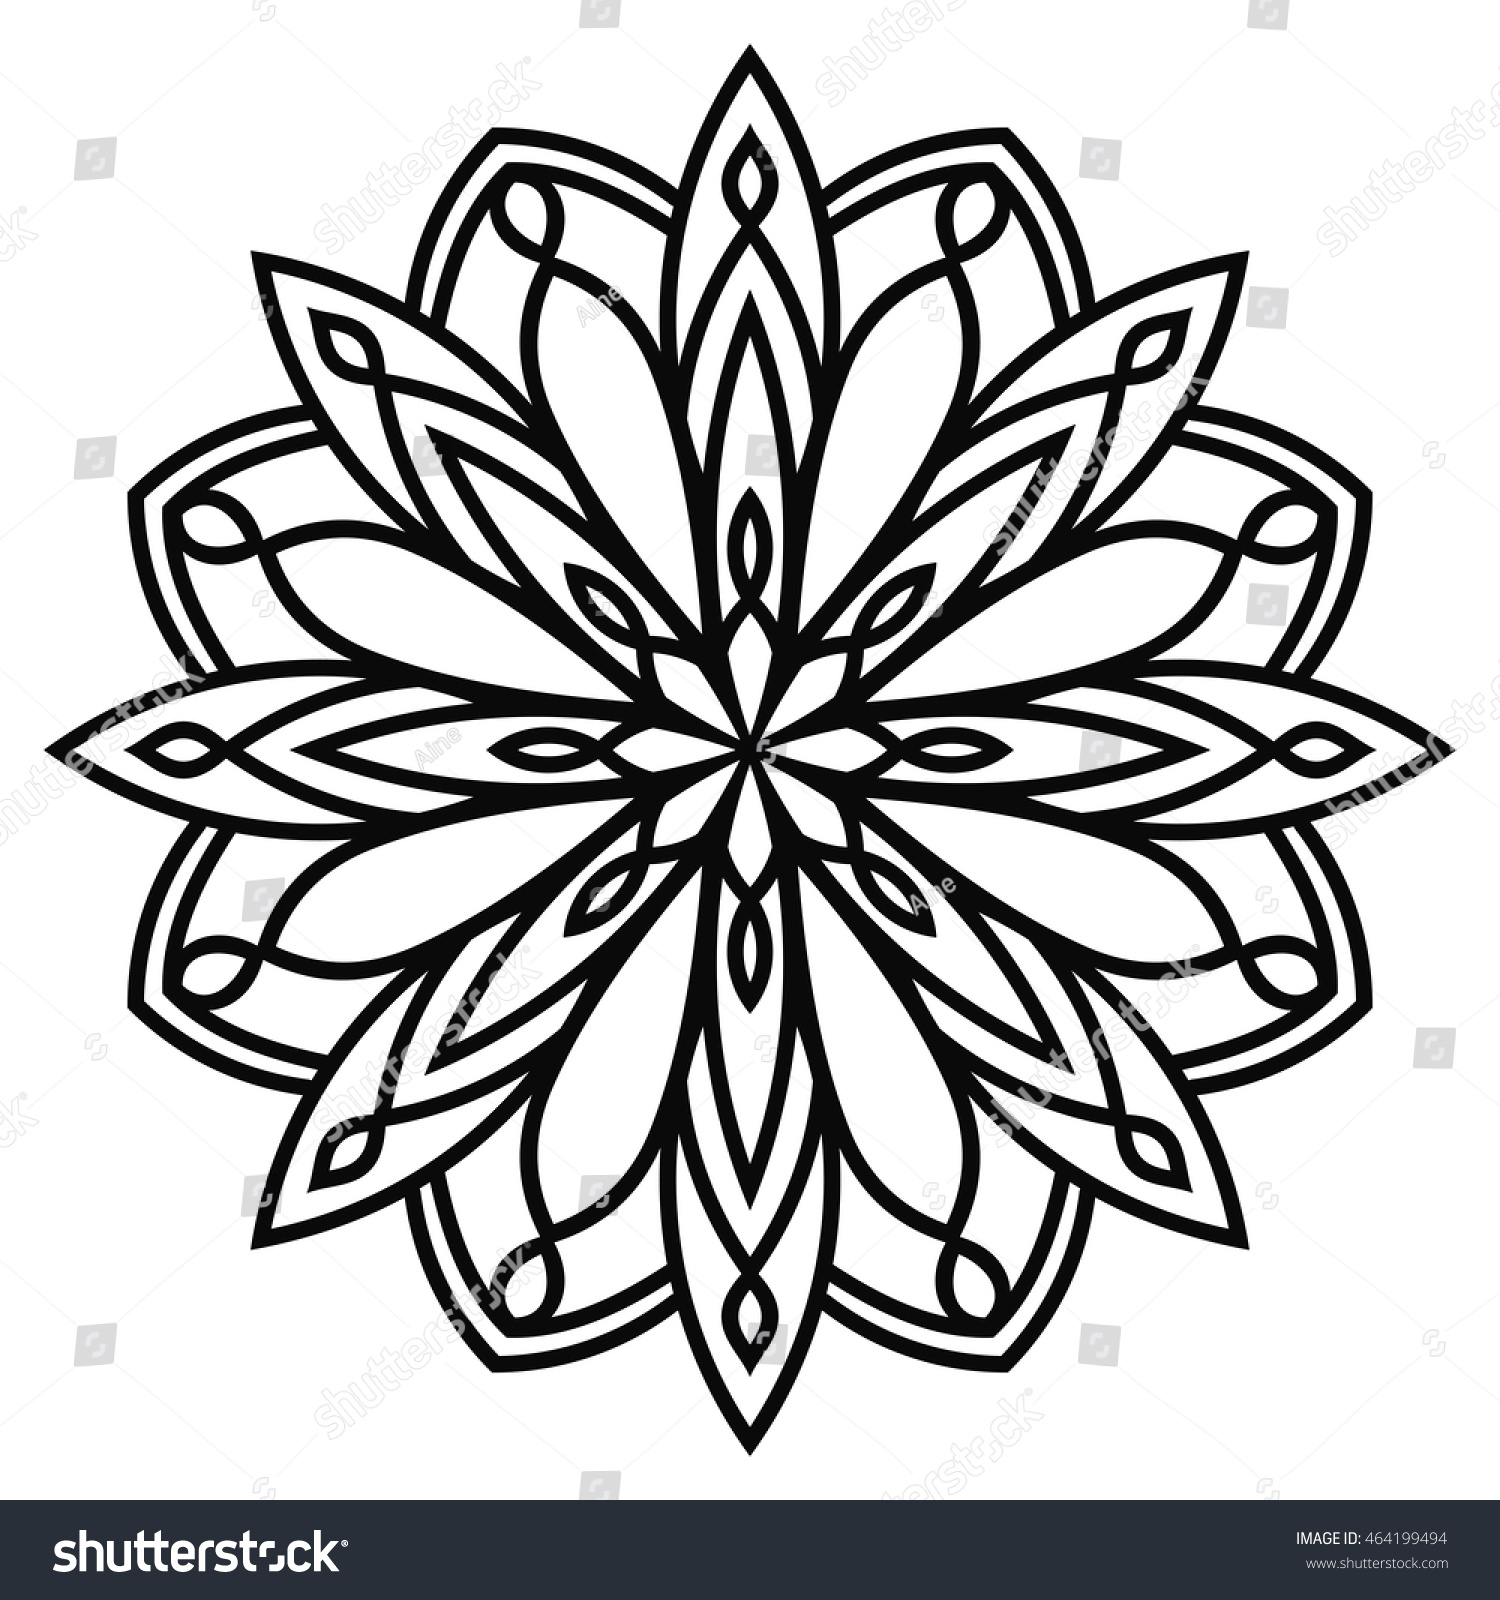 Floral design in circle stock vector image 75615991 - Stock Vector Black Outline Flower Round Mandala Ornament Geometric Circle Element For Design Birthday And 464199494